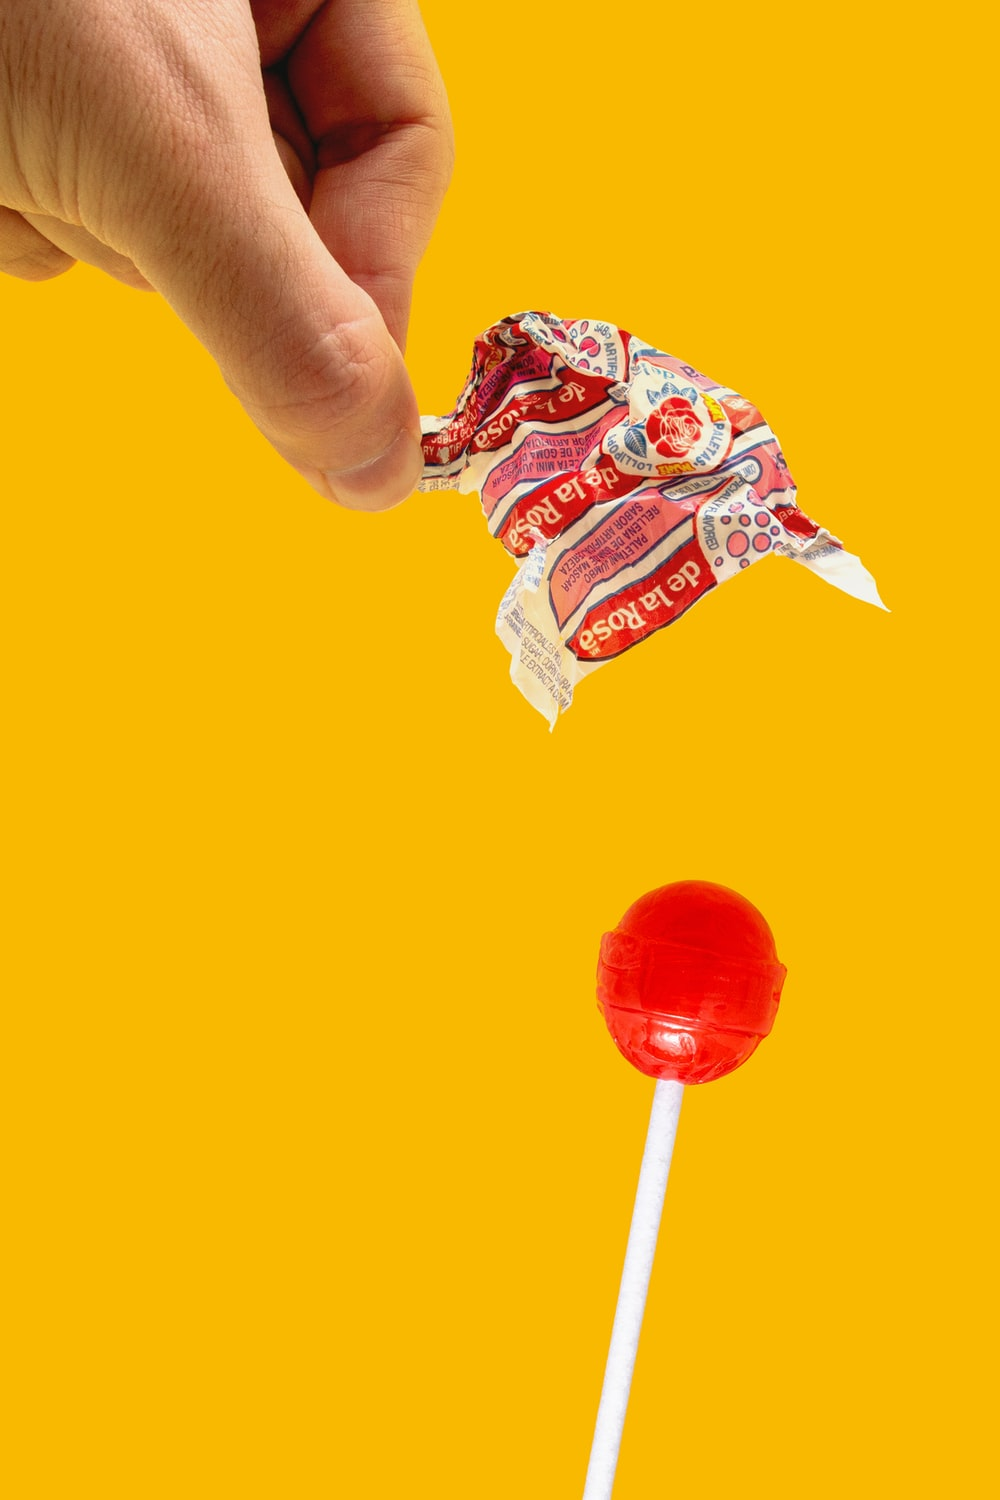 person holding red lollipop with blue and white candy wrapper